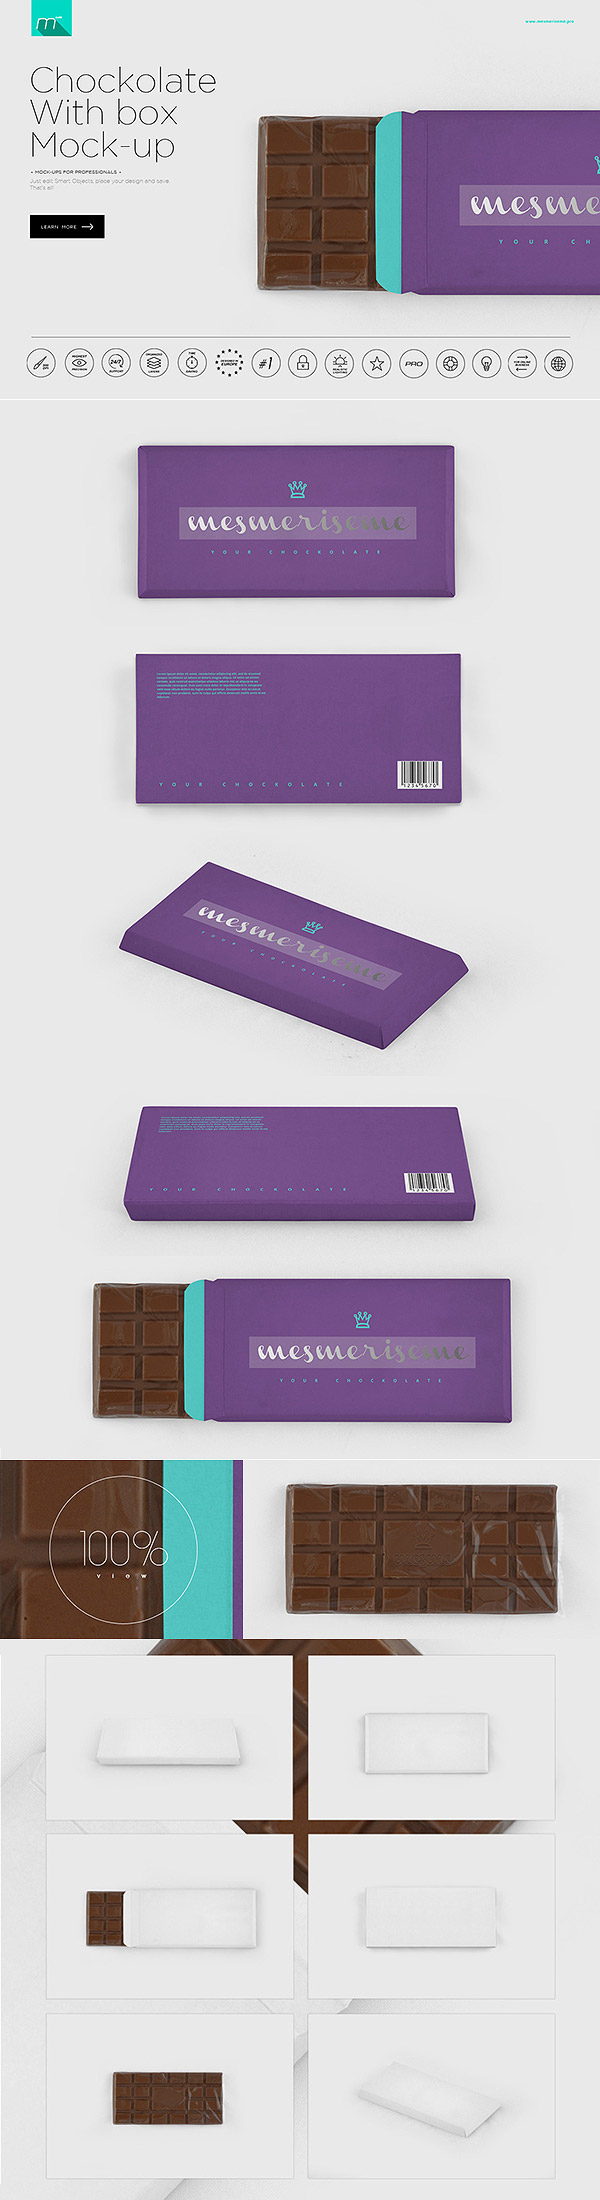 Chocolate Box Packaging Mockup